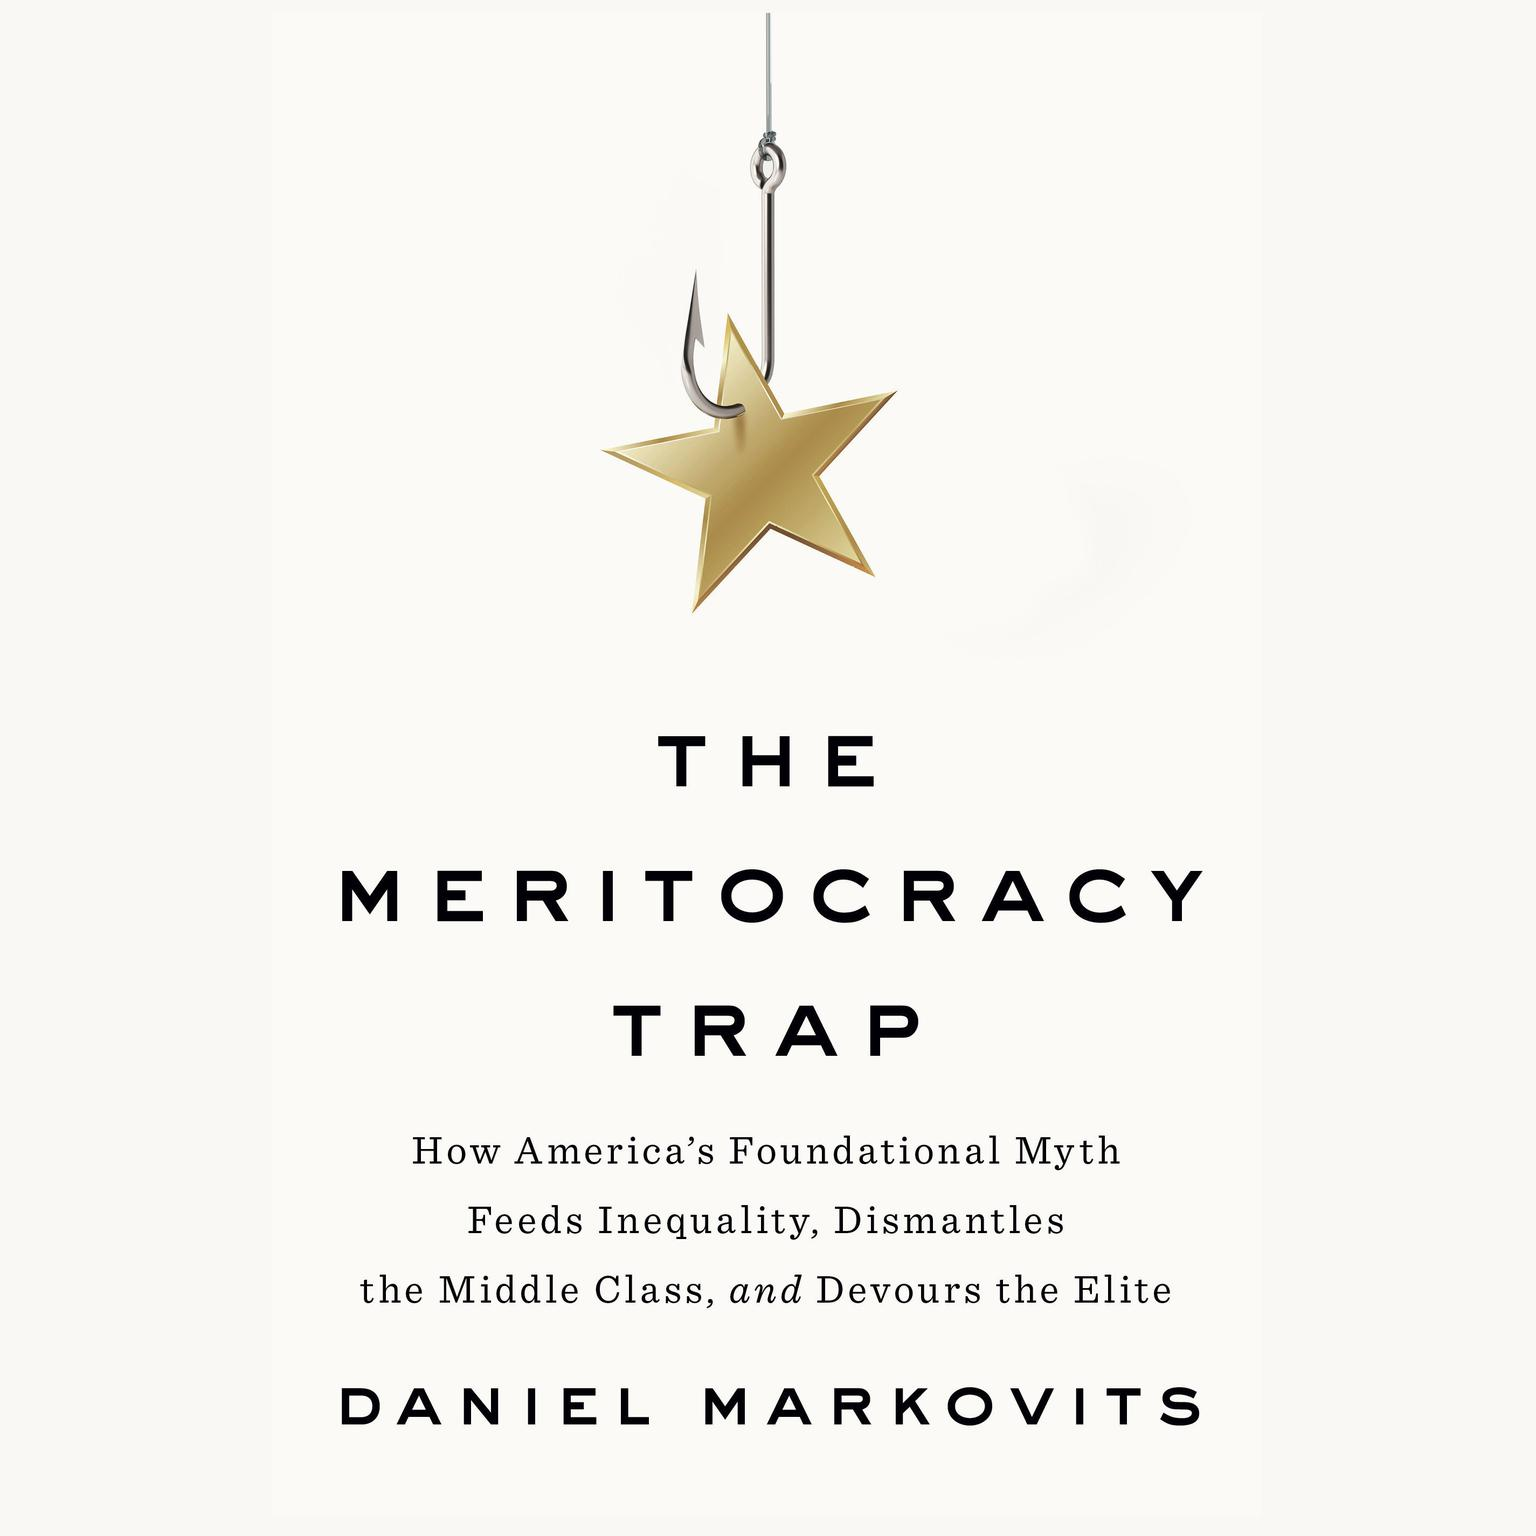 Printable The Meritocracy Trap: How America's Foundational Myth Feeds Inequality, Dismantles the Middle Class, and Devours the Elite Audiobook Cover Art